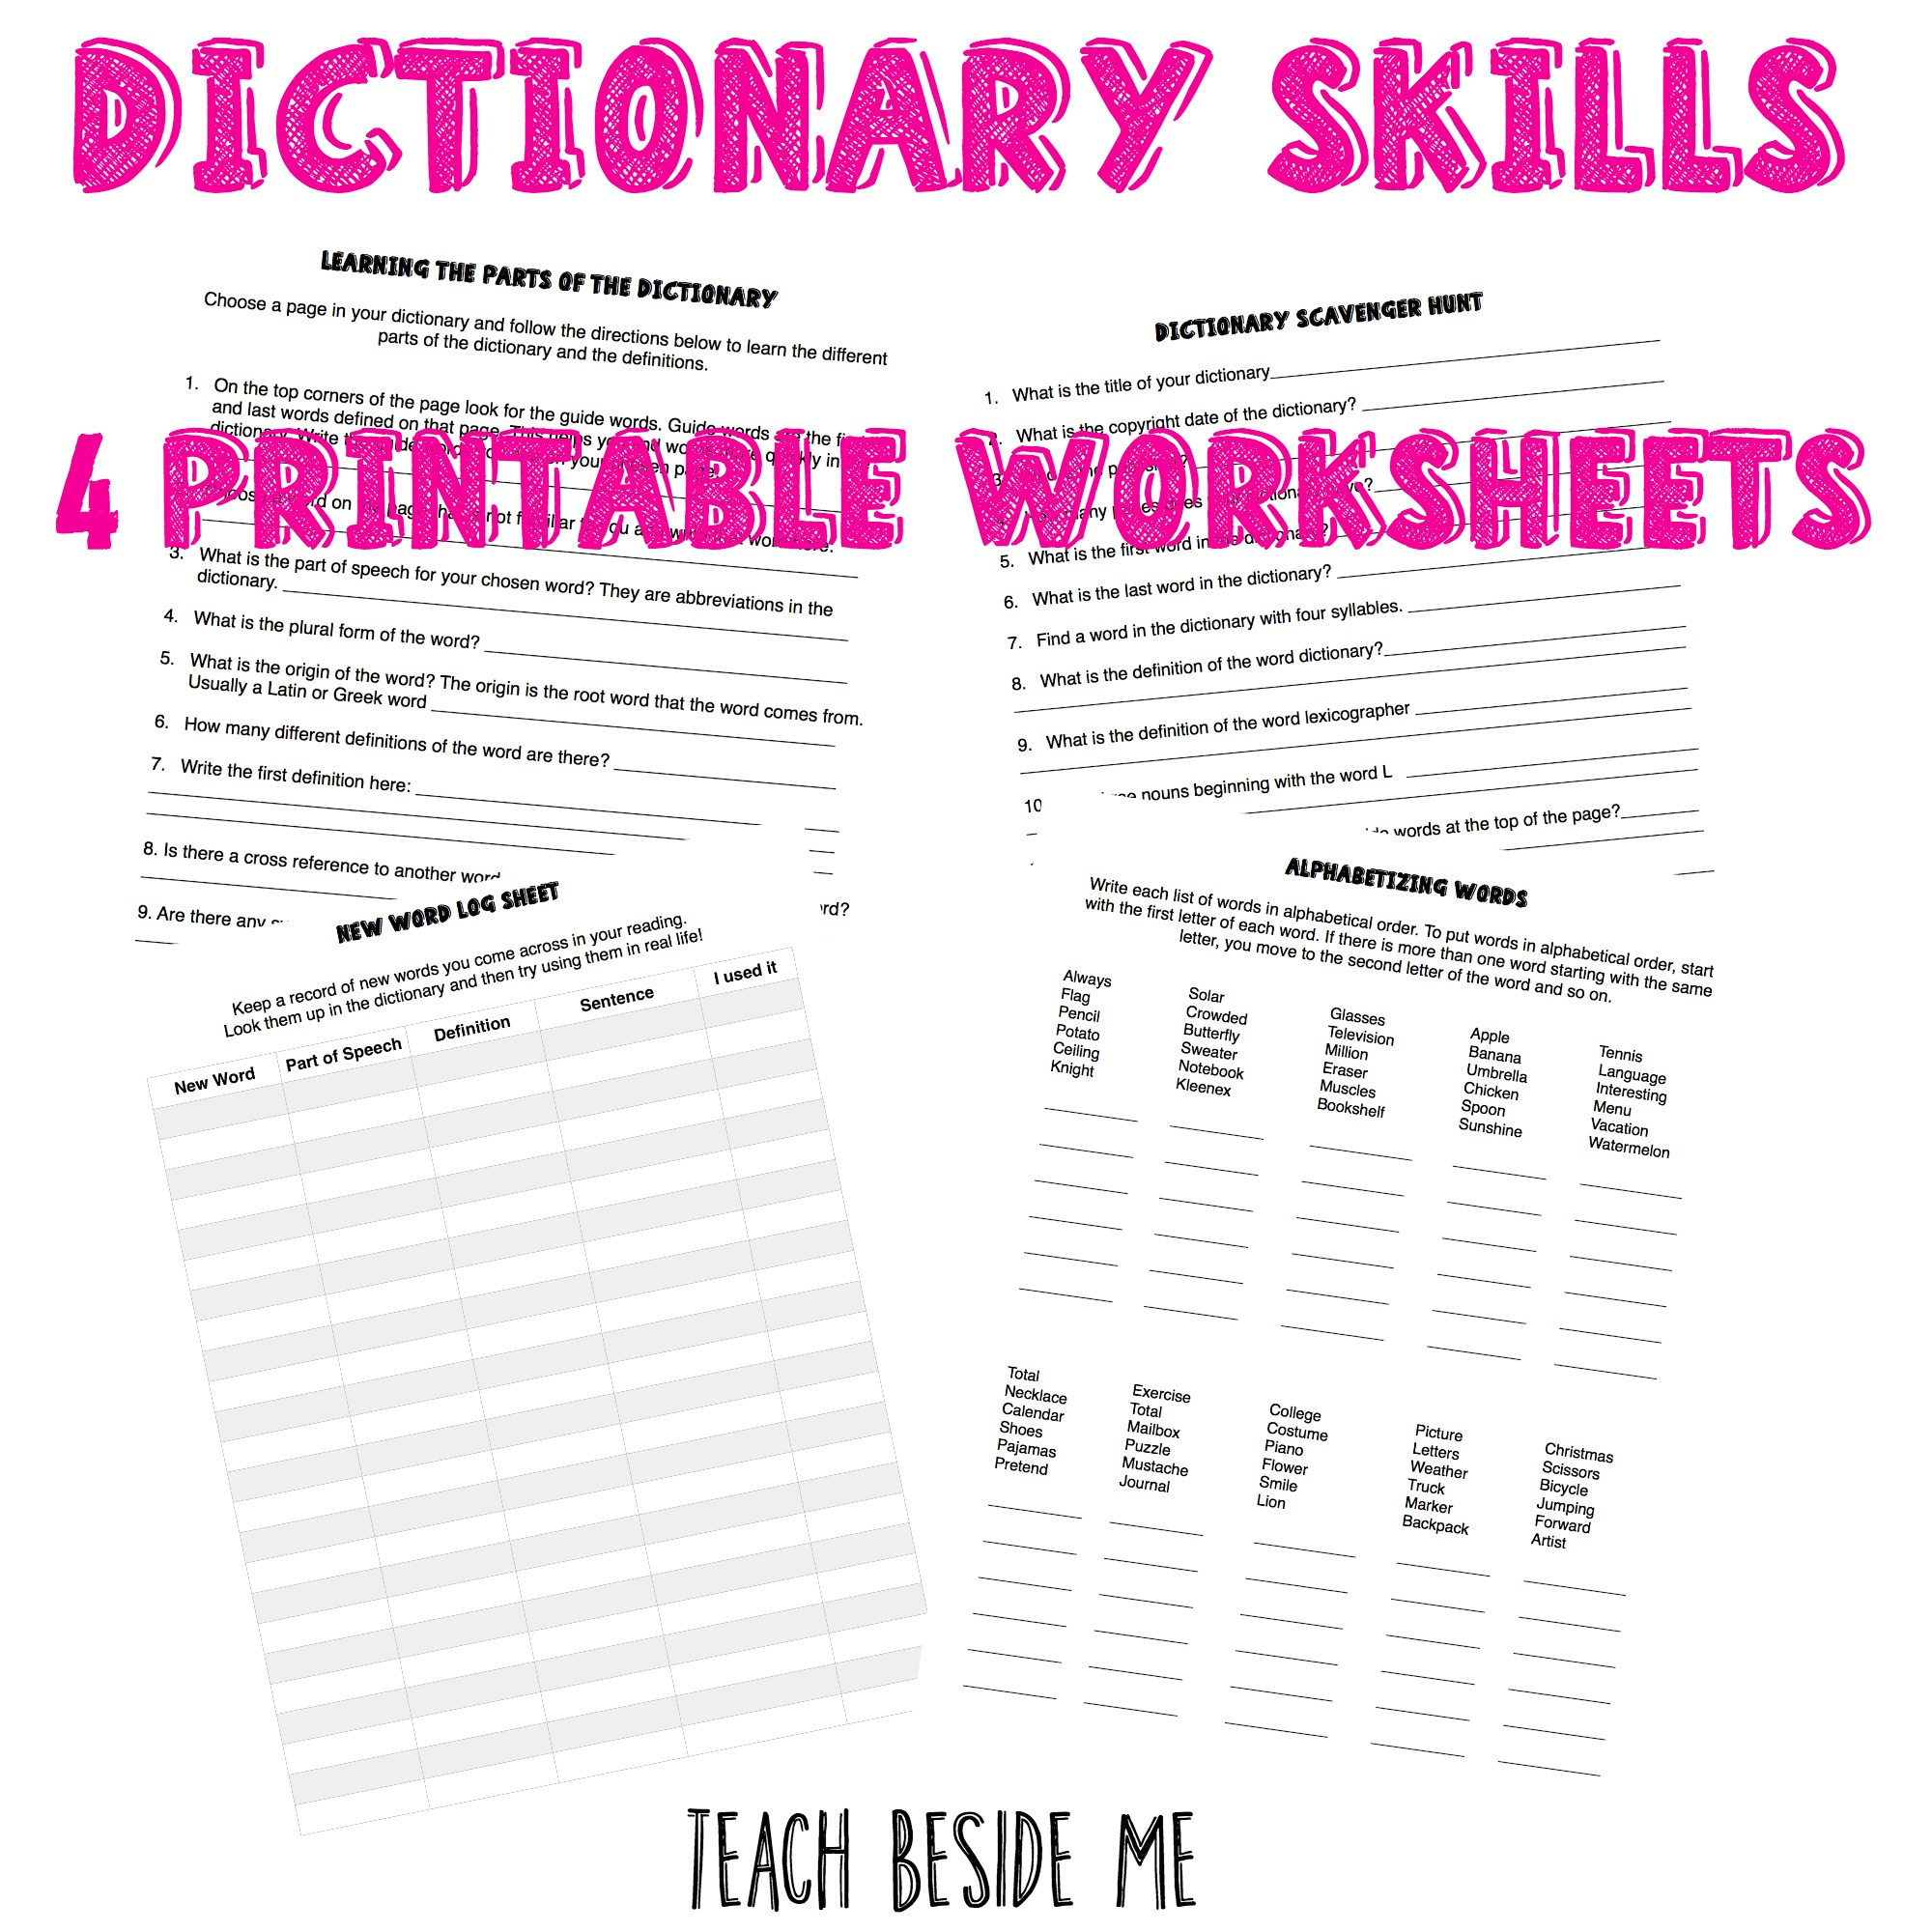 Printables Dictionary Skills Worksheets dictionary skills worksheets for kids teach beside me kids